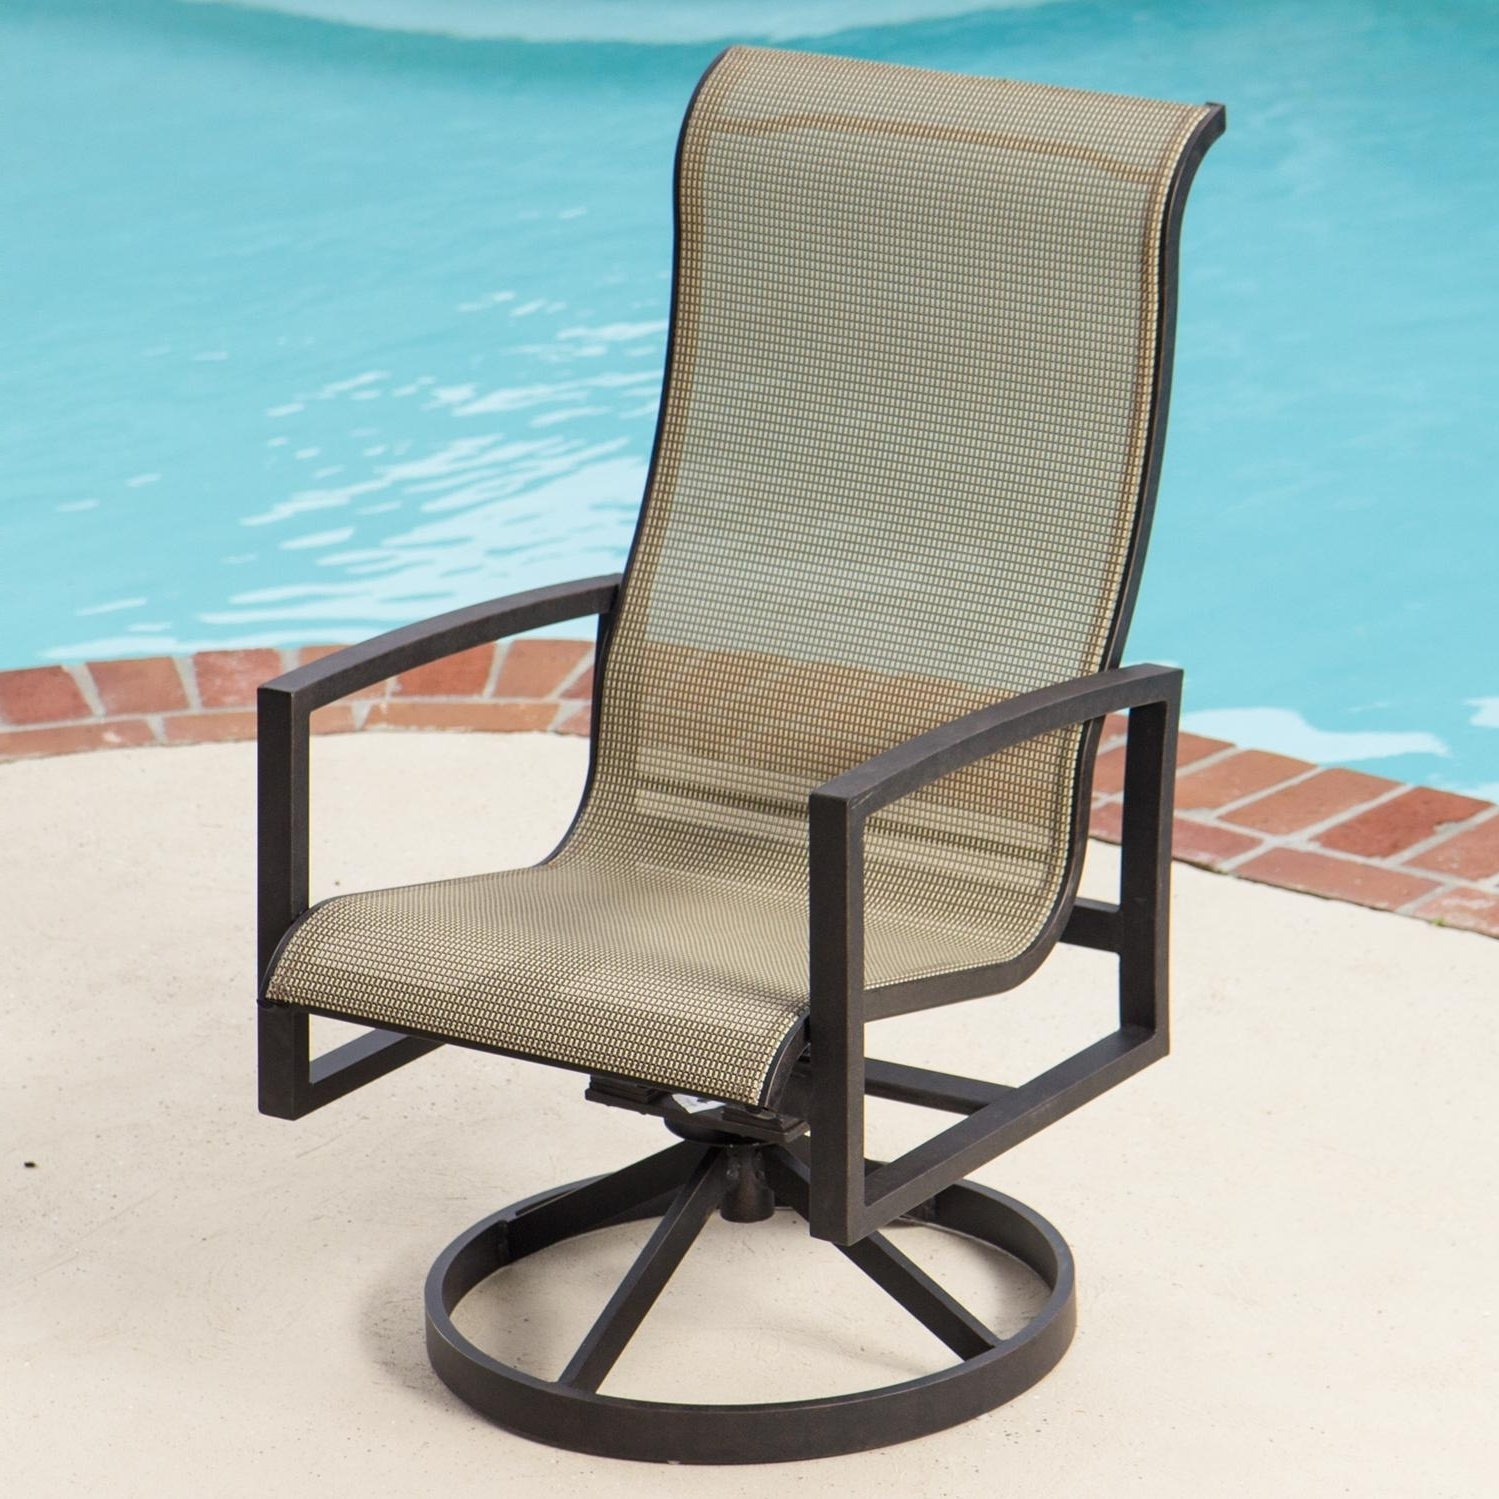 Famous Acadia Sling Patio Swivel Rocker Dining Chairlakeview Outdoor For Patio Sling Rocking Chairs (View 2 of 15)